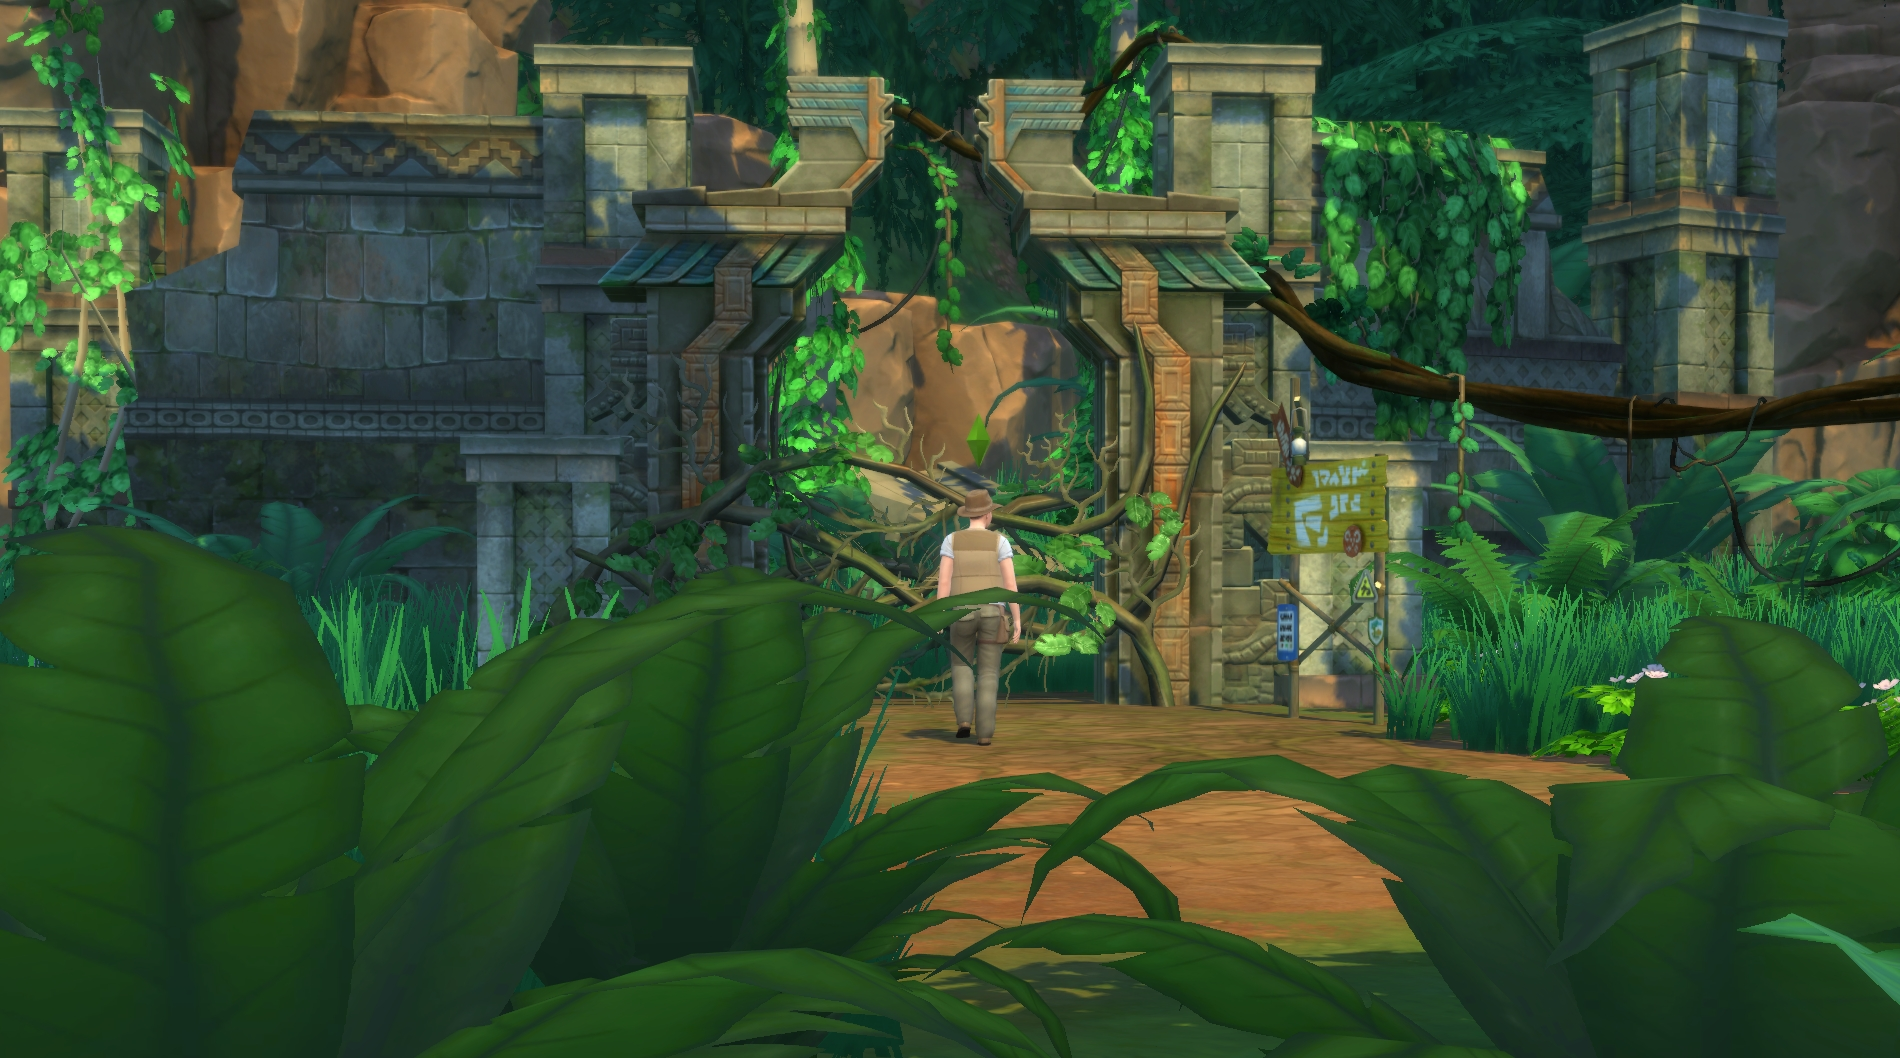 The Sims 4 Jungle Adventure: Where to explore the Jungle